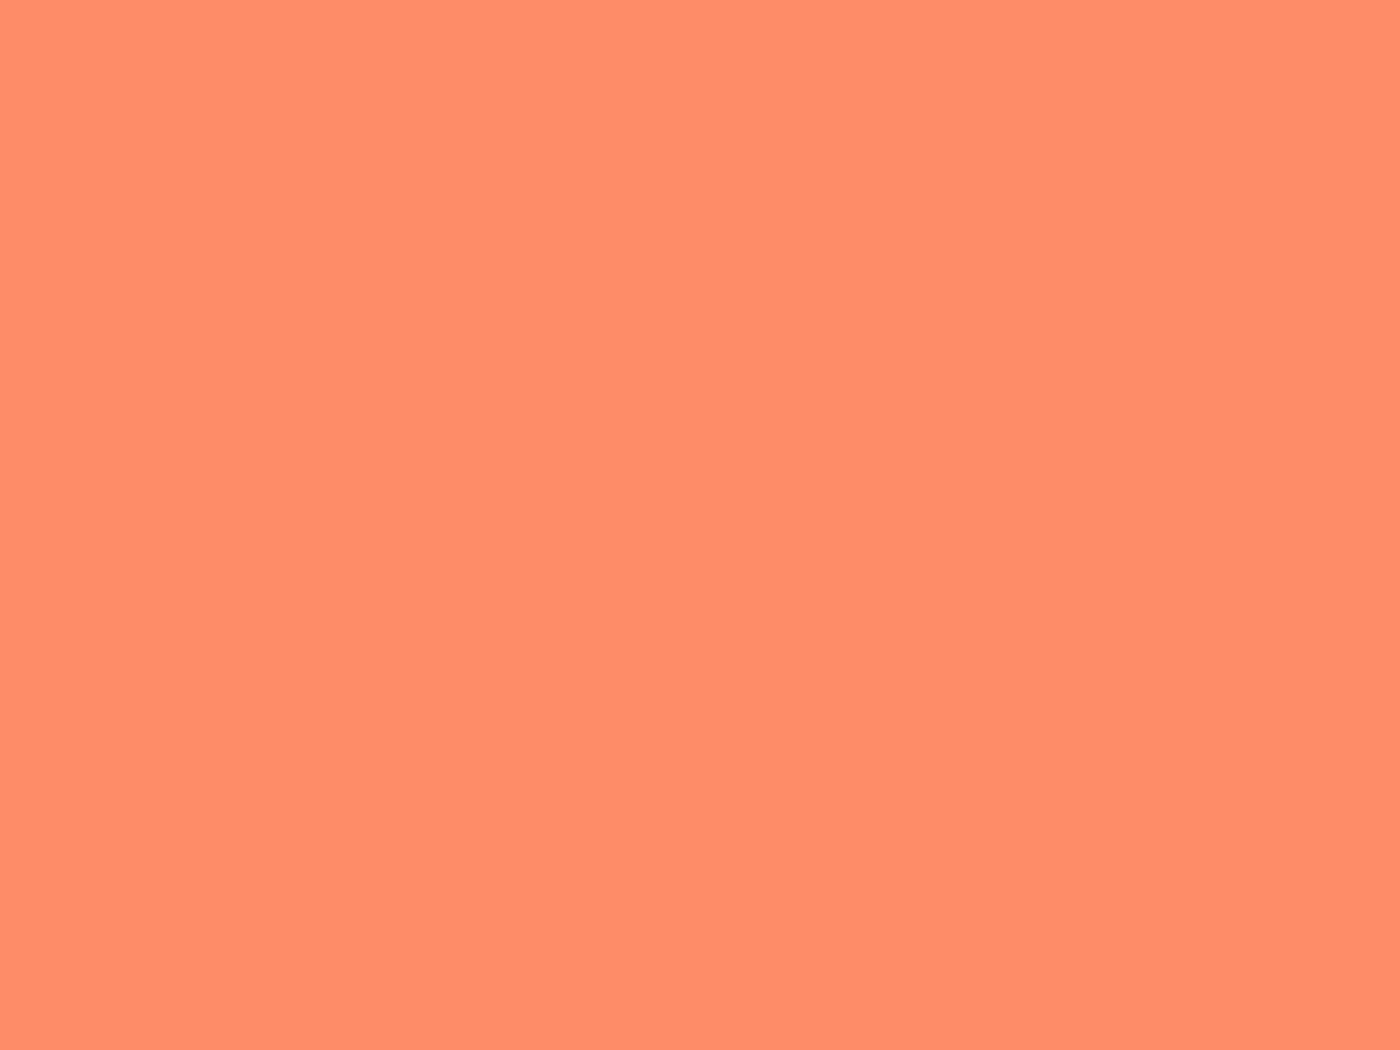 1400x1050 Salmon Solid Color Background